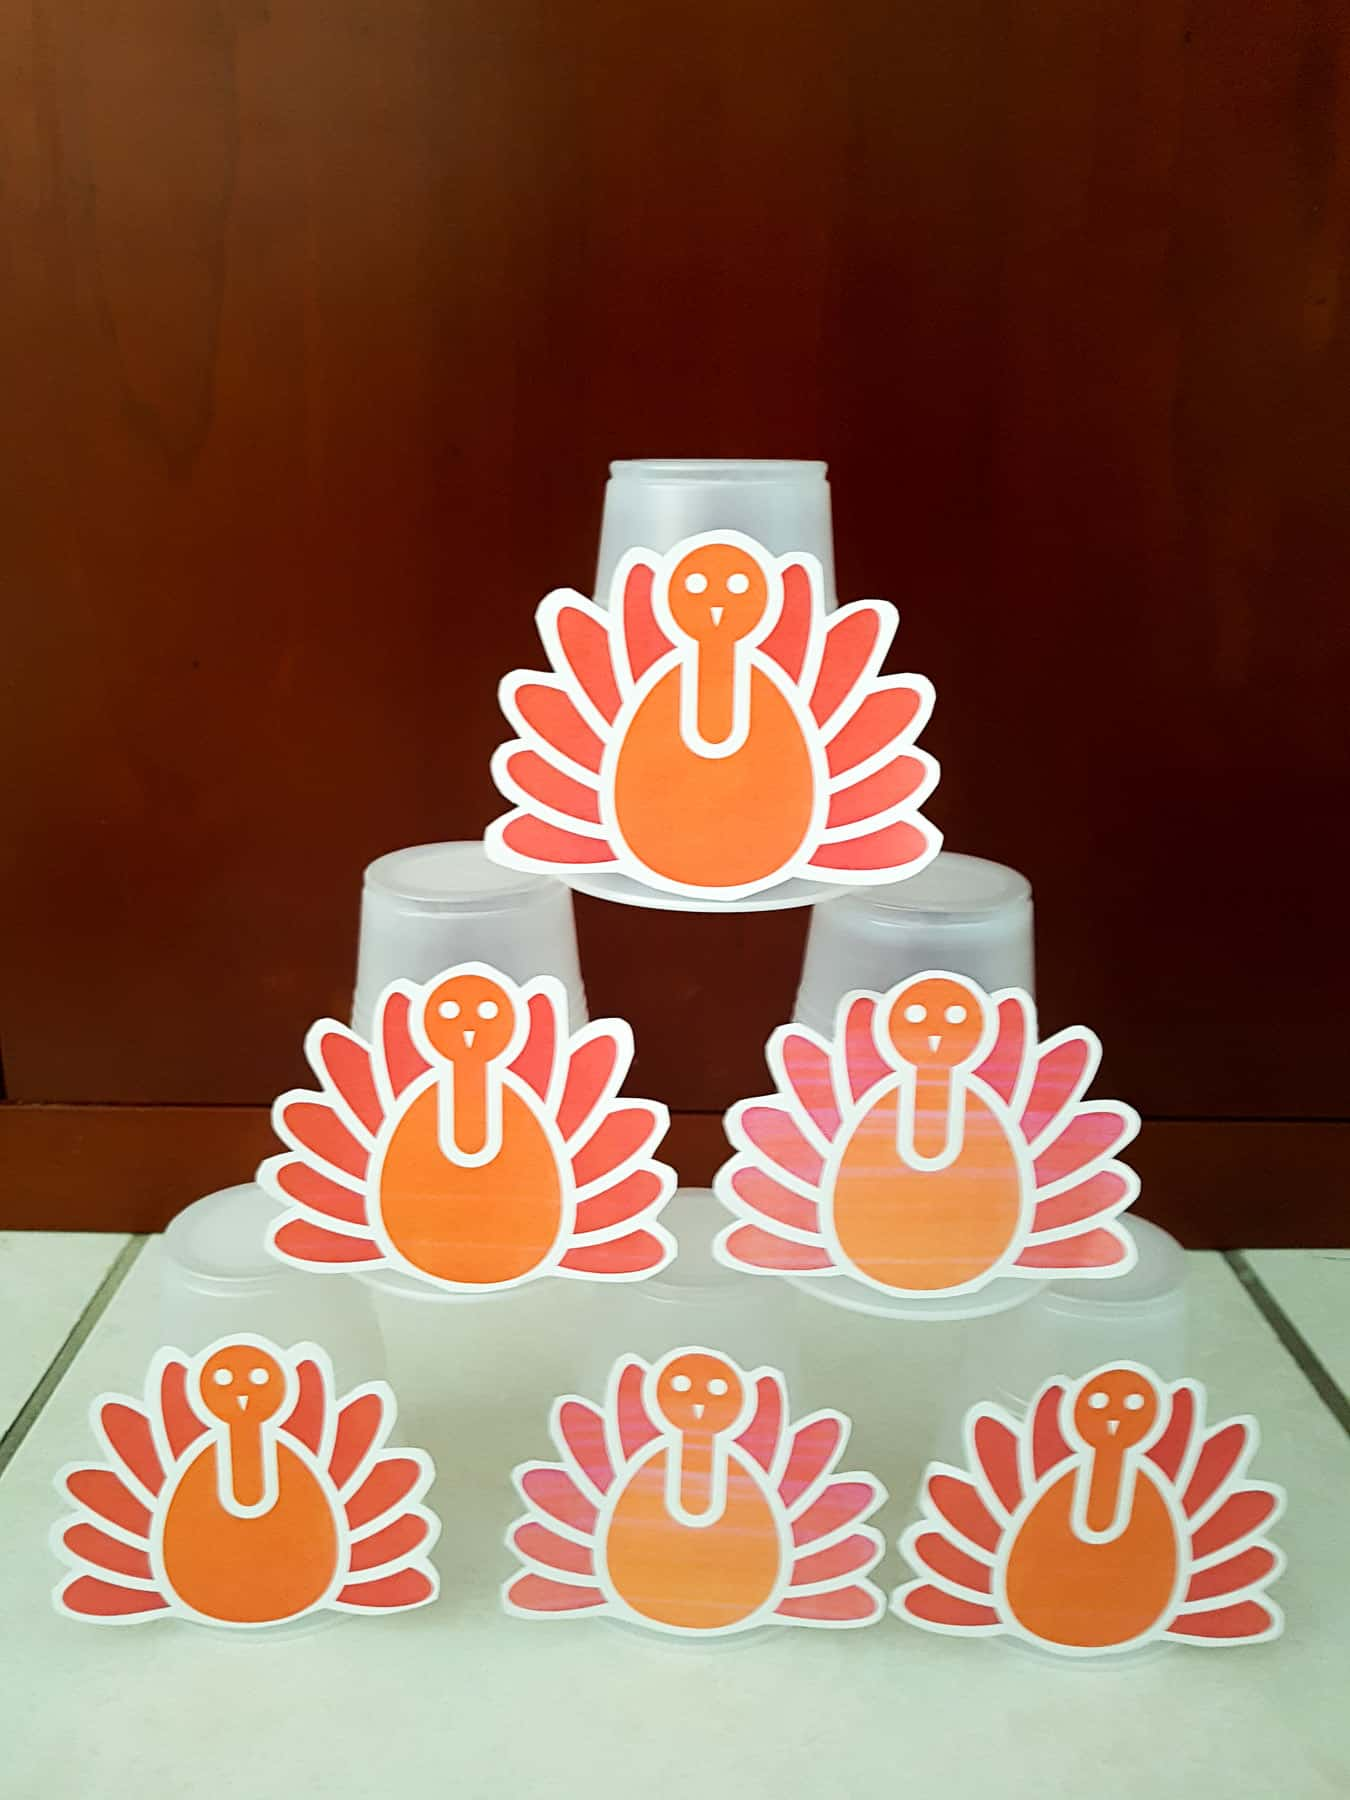 plastic cups with paper thanksgiving turkeys glued to them stacked as a pyramid, to demonstrate a toddler thanksgiving bowling activity